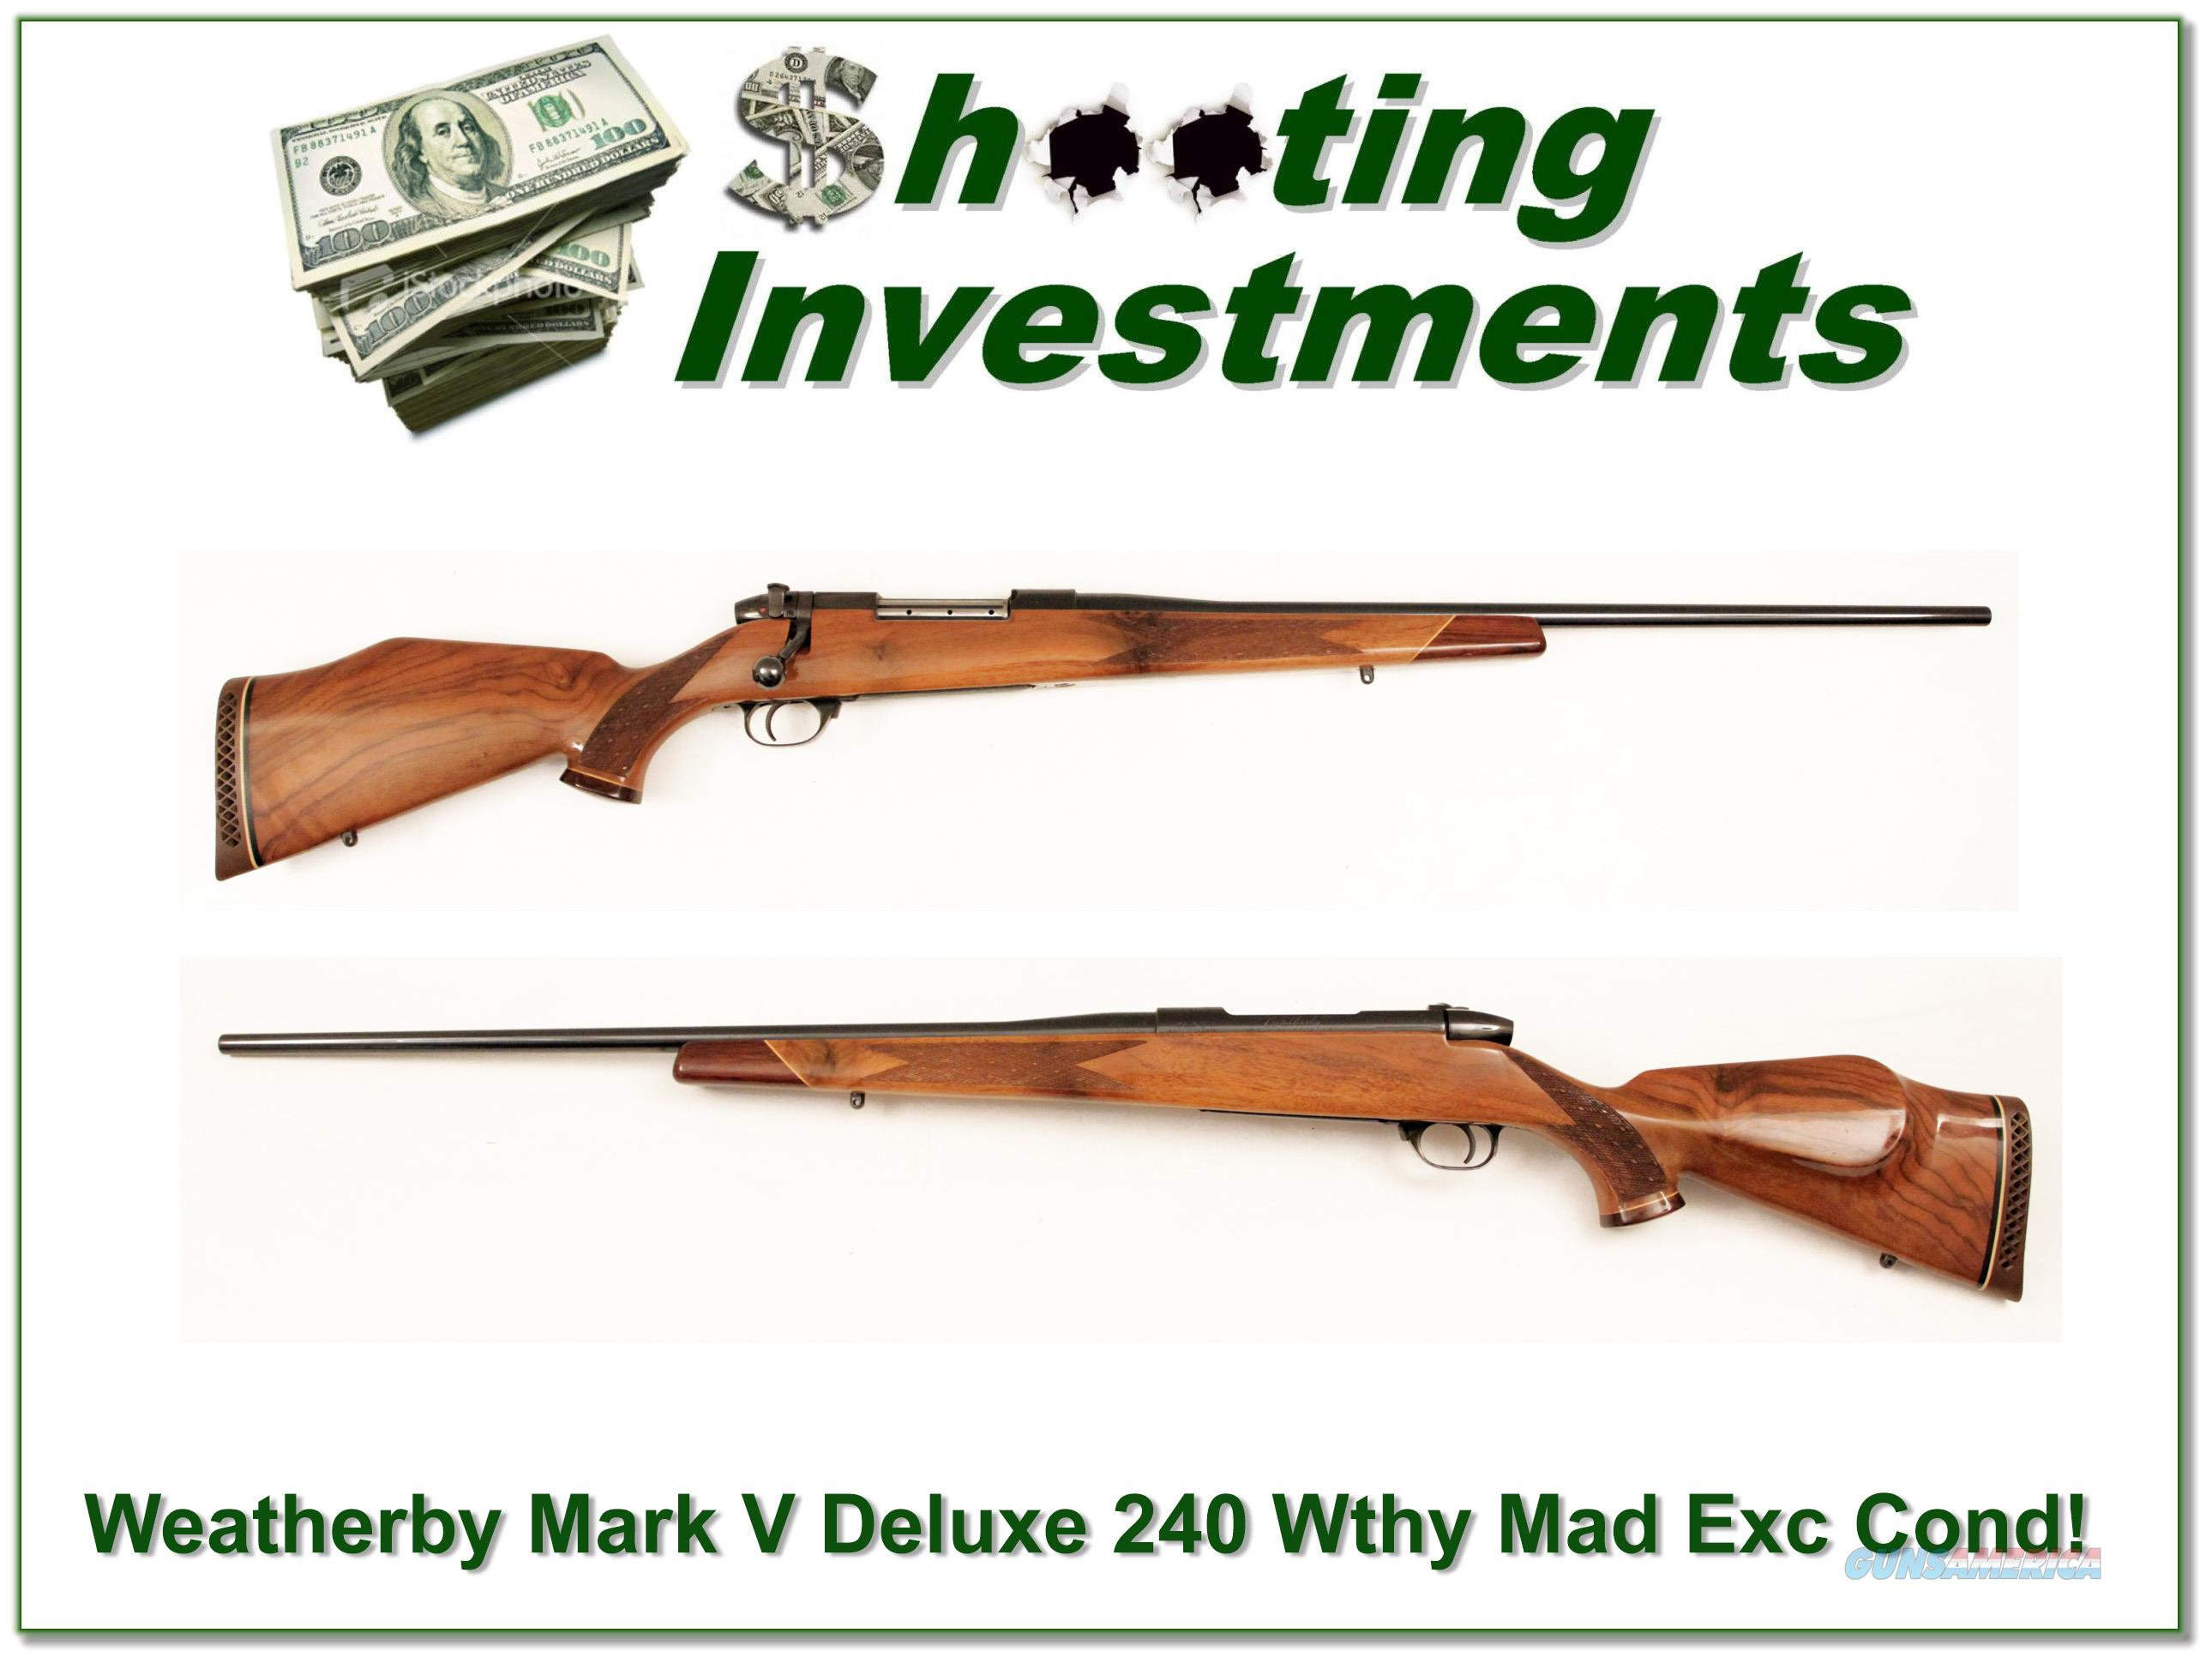 Weatherby Mark V Deluxe 240 Wthy mag Exc Cond!  Guns > Rifles > Weatherby Rifles > Sporting